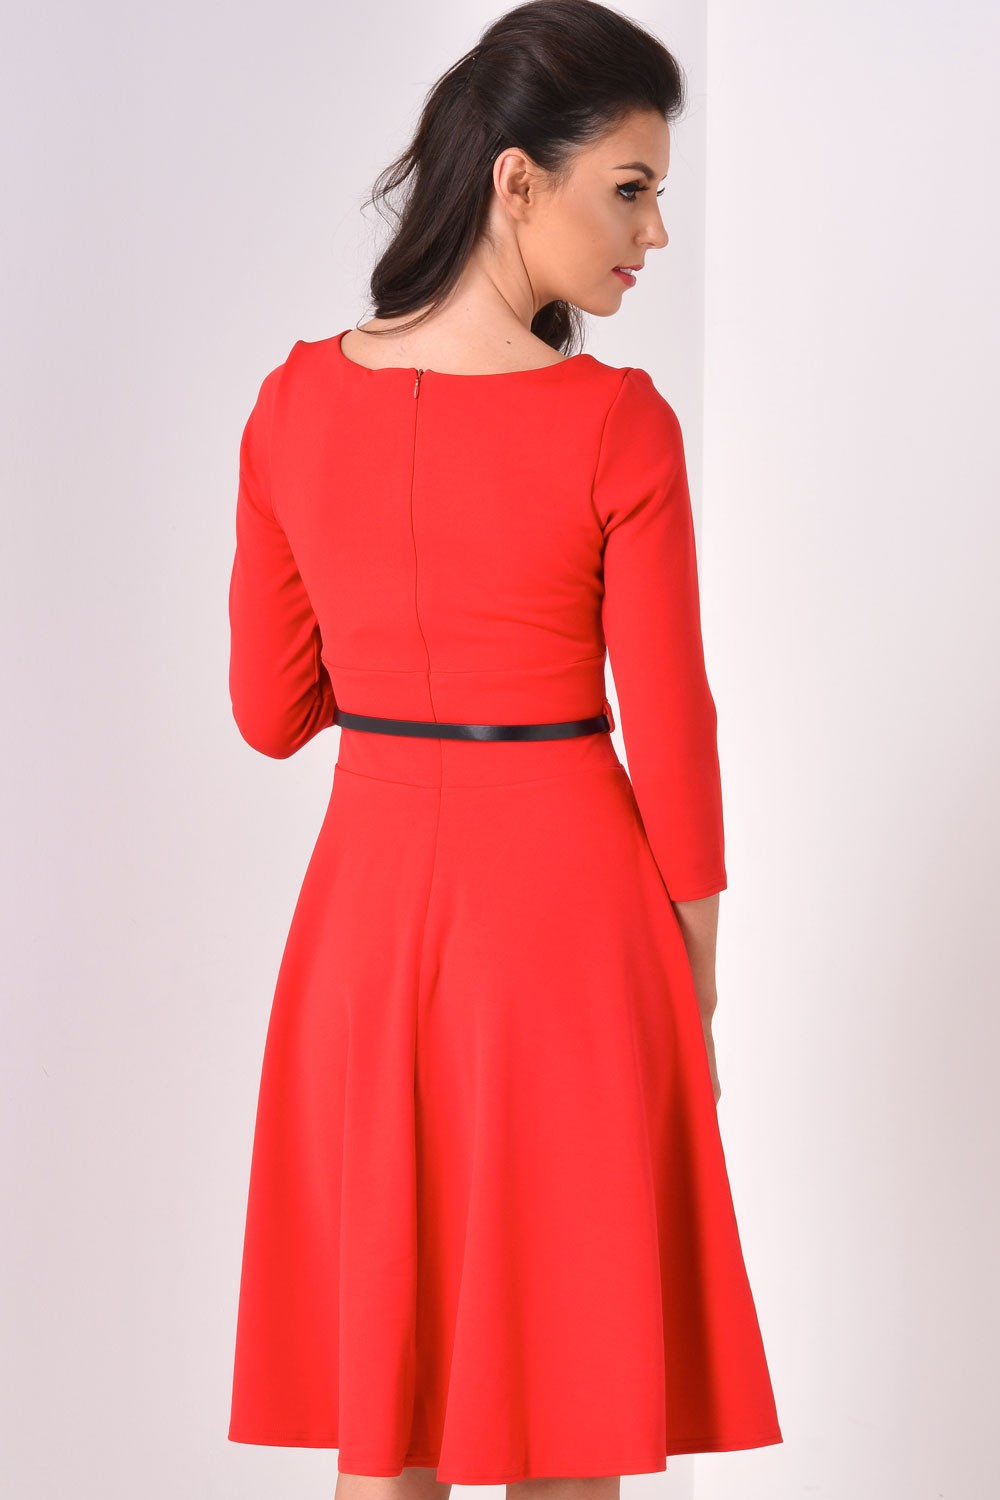 Shop sleeveless full skirt dress at Neiman Marcus, where you will find free shipping on the latest in fashion from top designers. Available in Red. More Details Milly Casey Draped Stretch-Silk Dress Details EXCLUSIVELY AT NEIMAN MARCUS Milly stretch silk